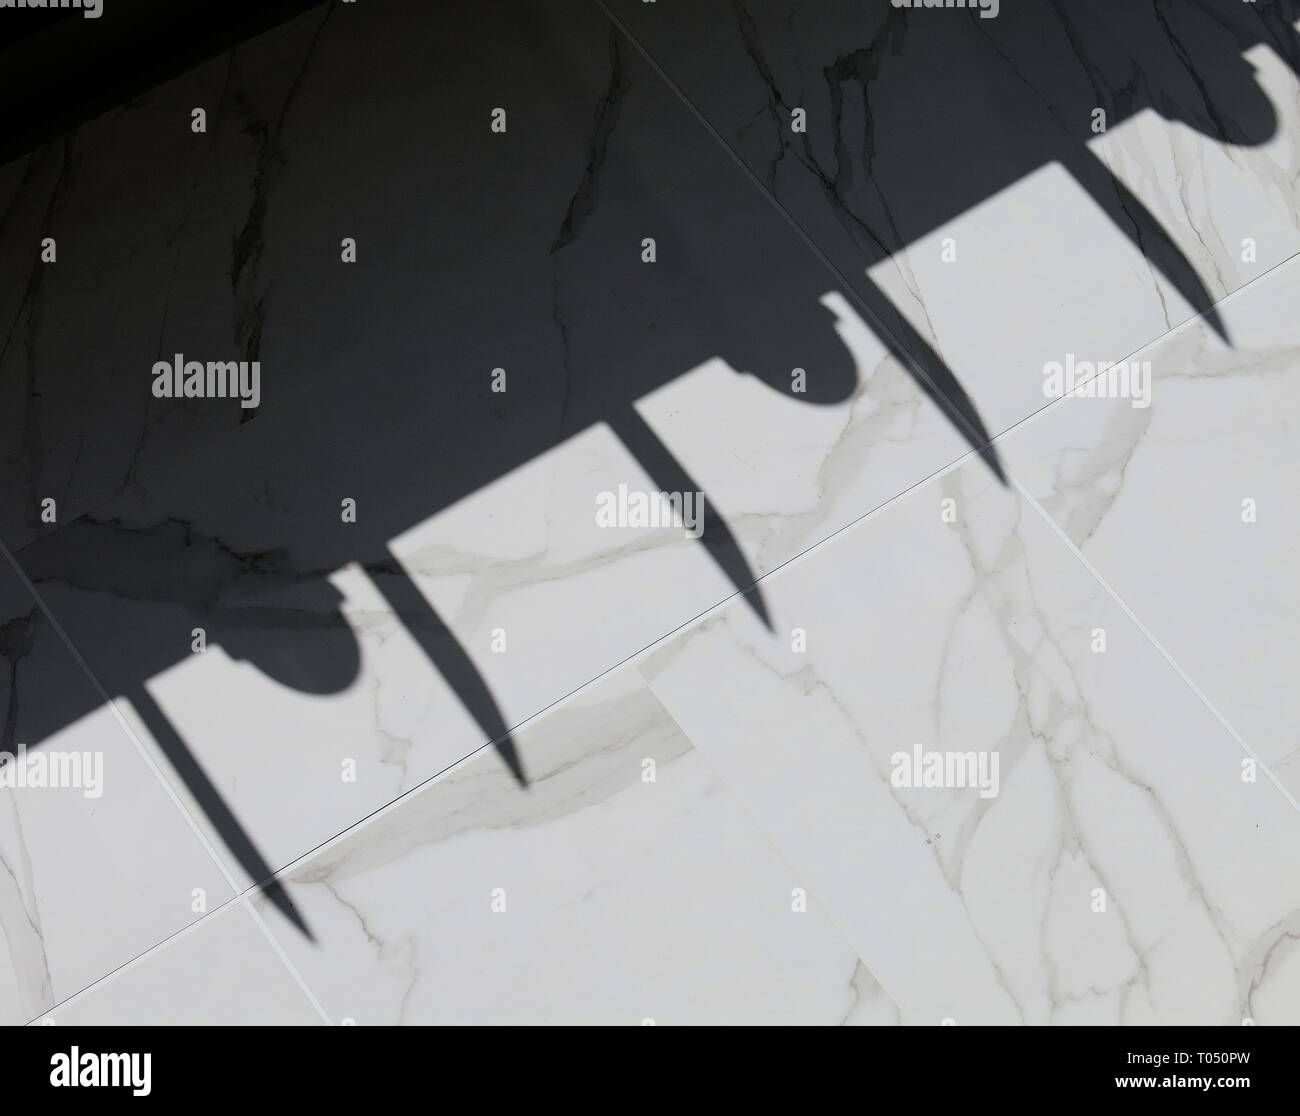 Shadows cast on tiled wall. - Stock Image